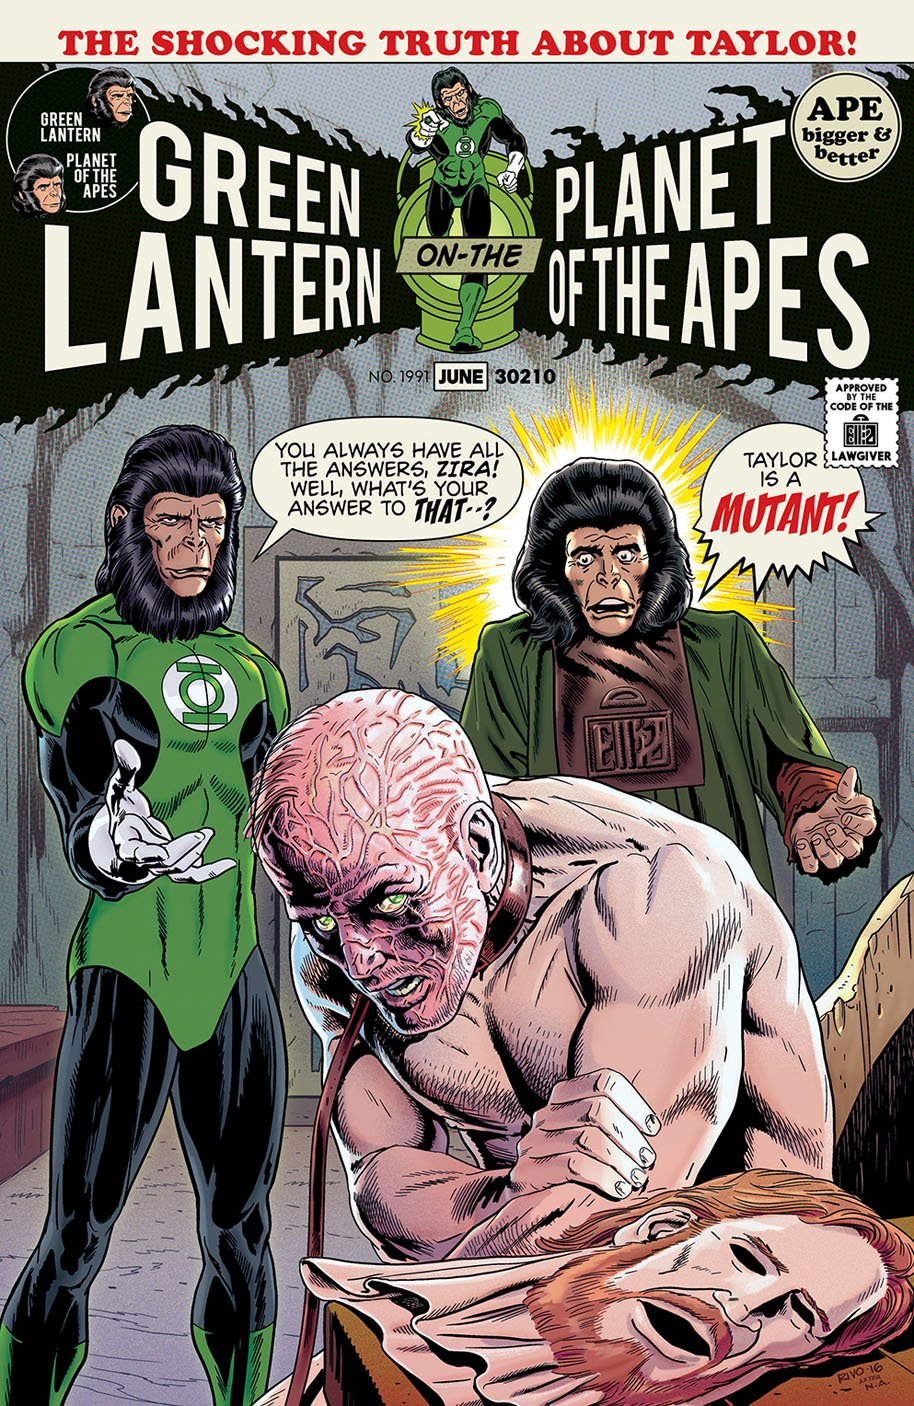 Planet of the Apes Green Lantern 4 Classic Variant Cover C